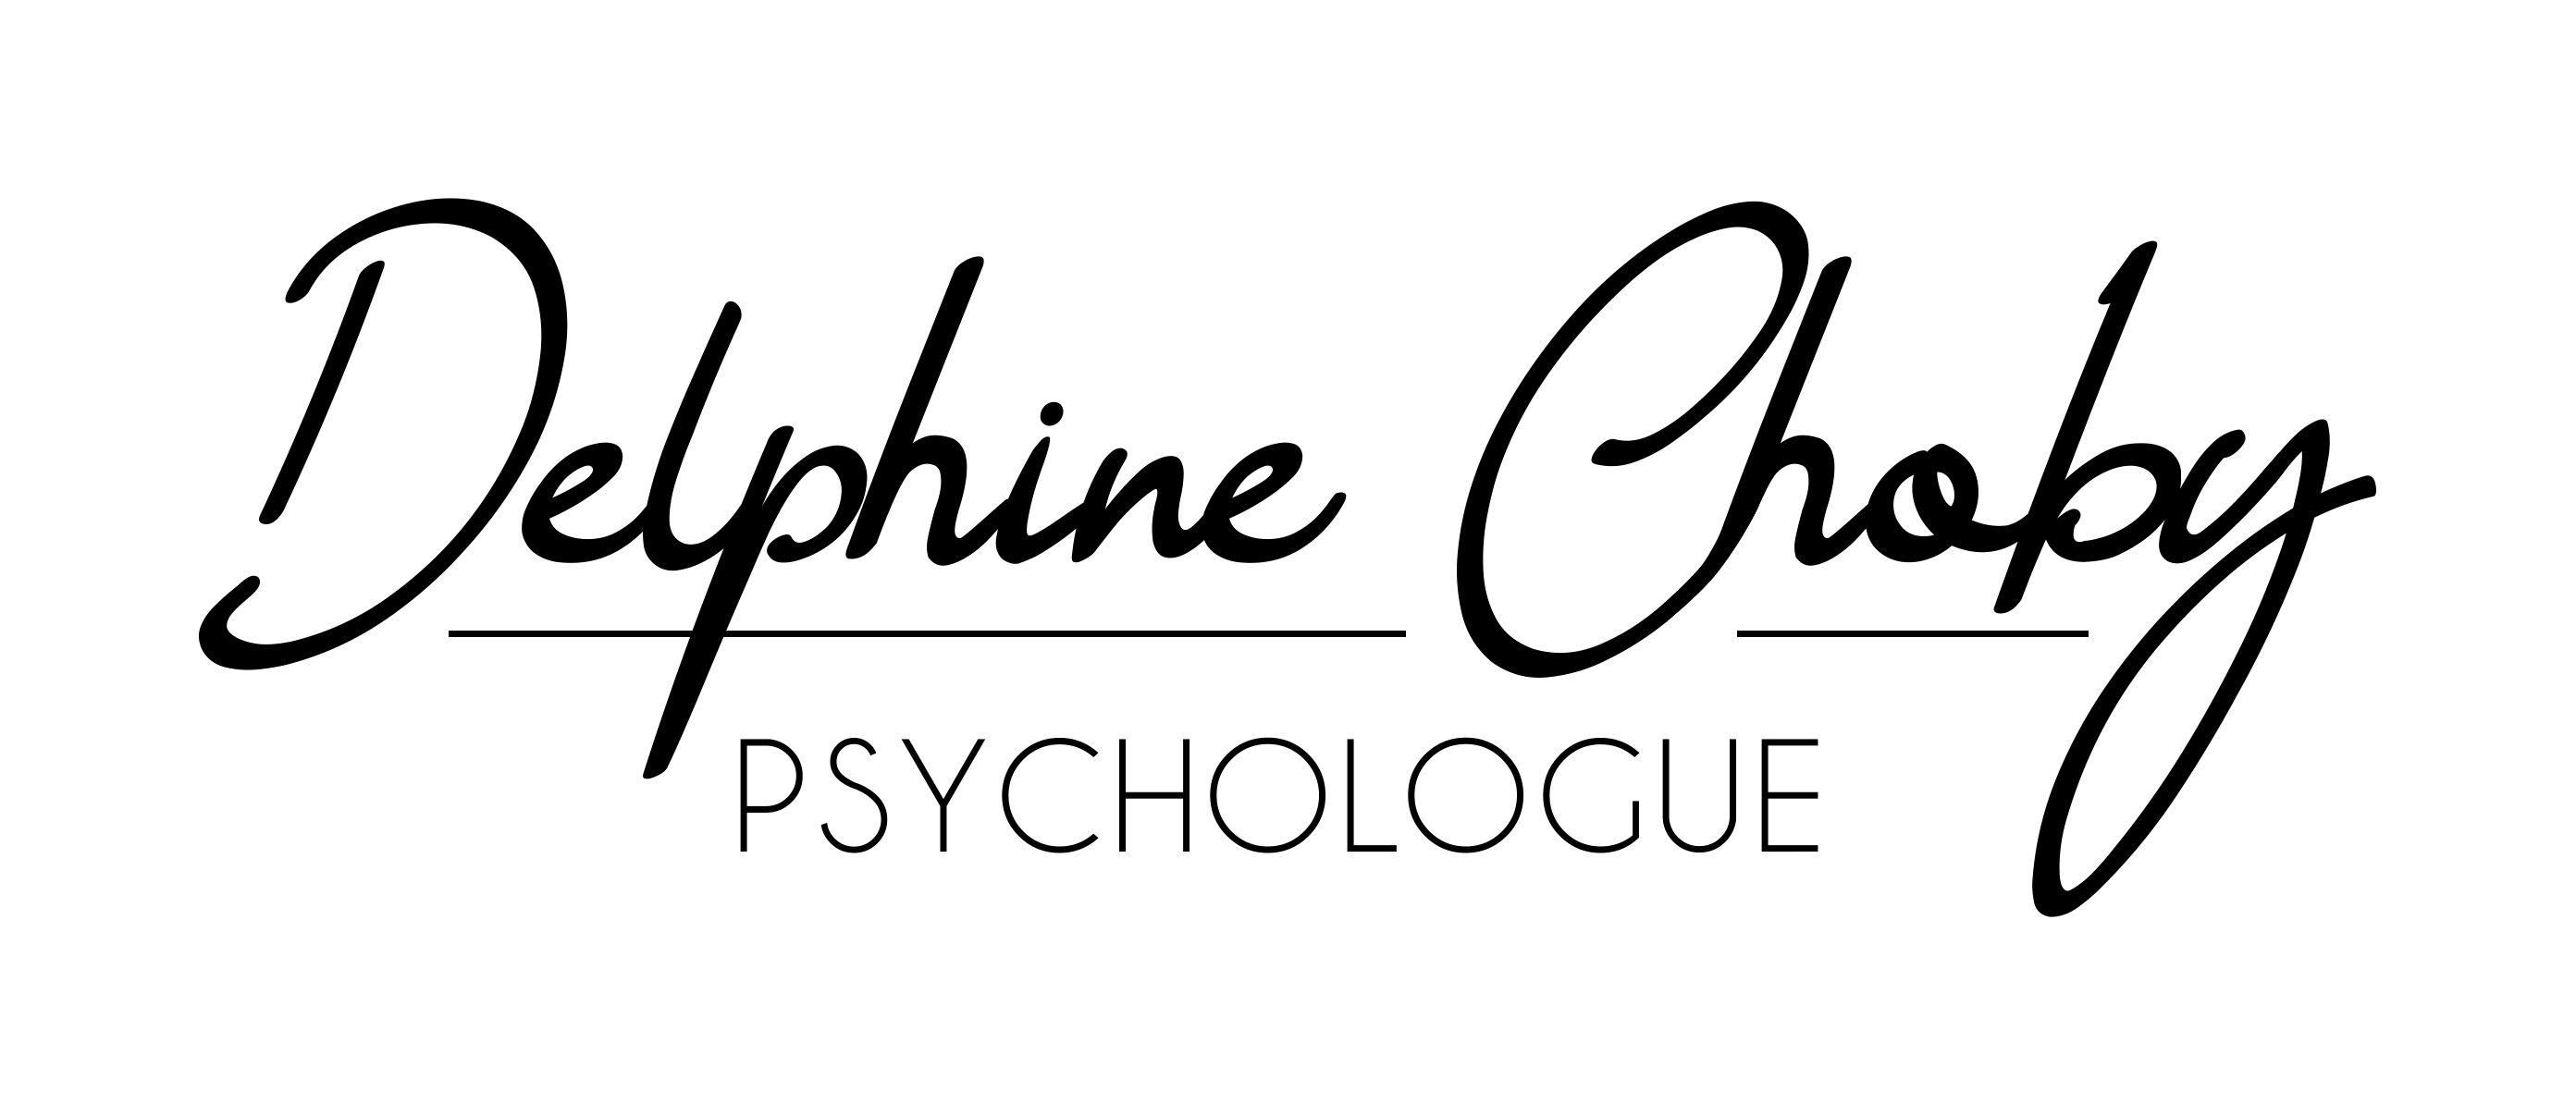 Delphine Choby